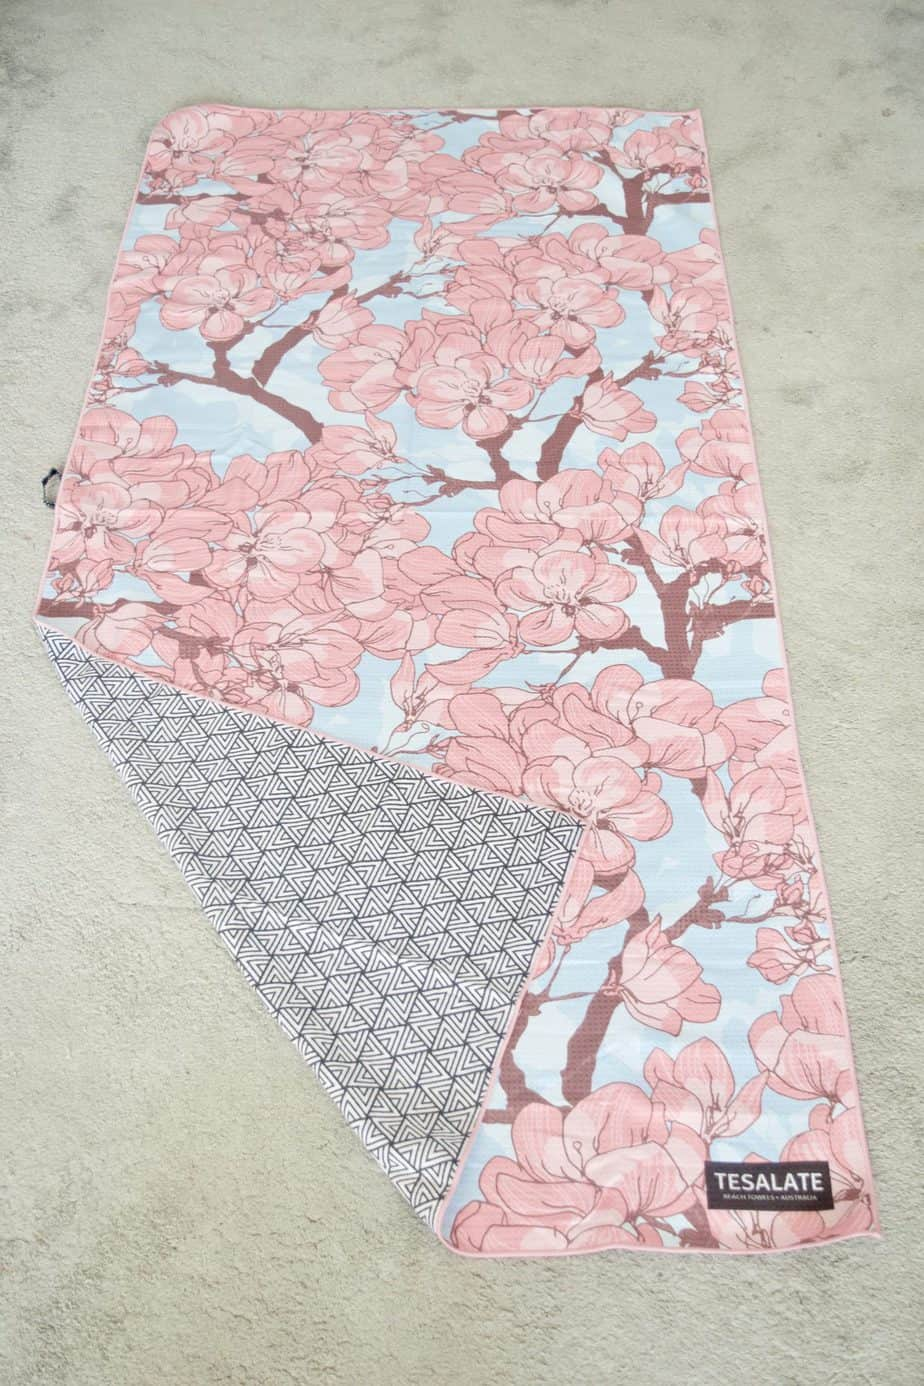 Tesalate Towel - Sand Free Towel in pin and blue flower print